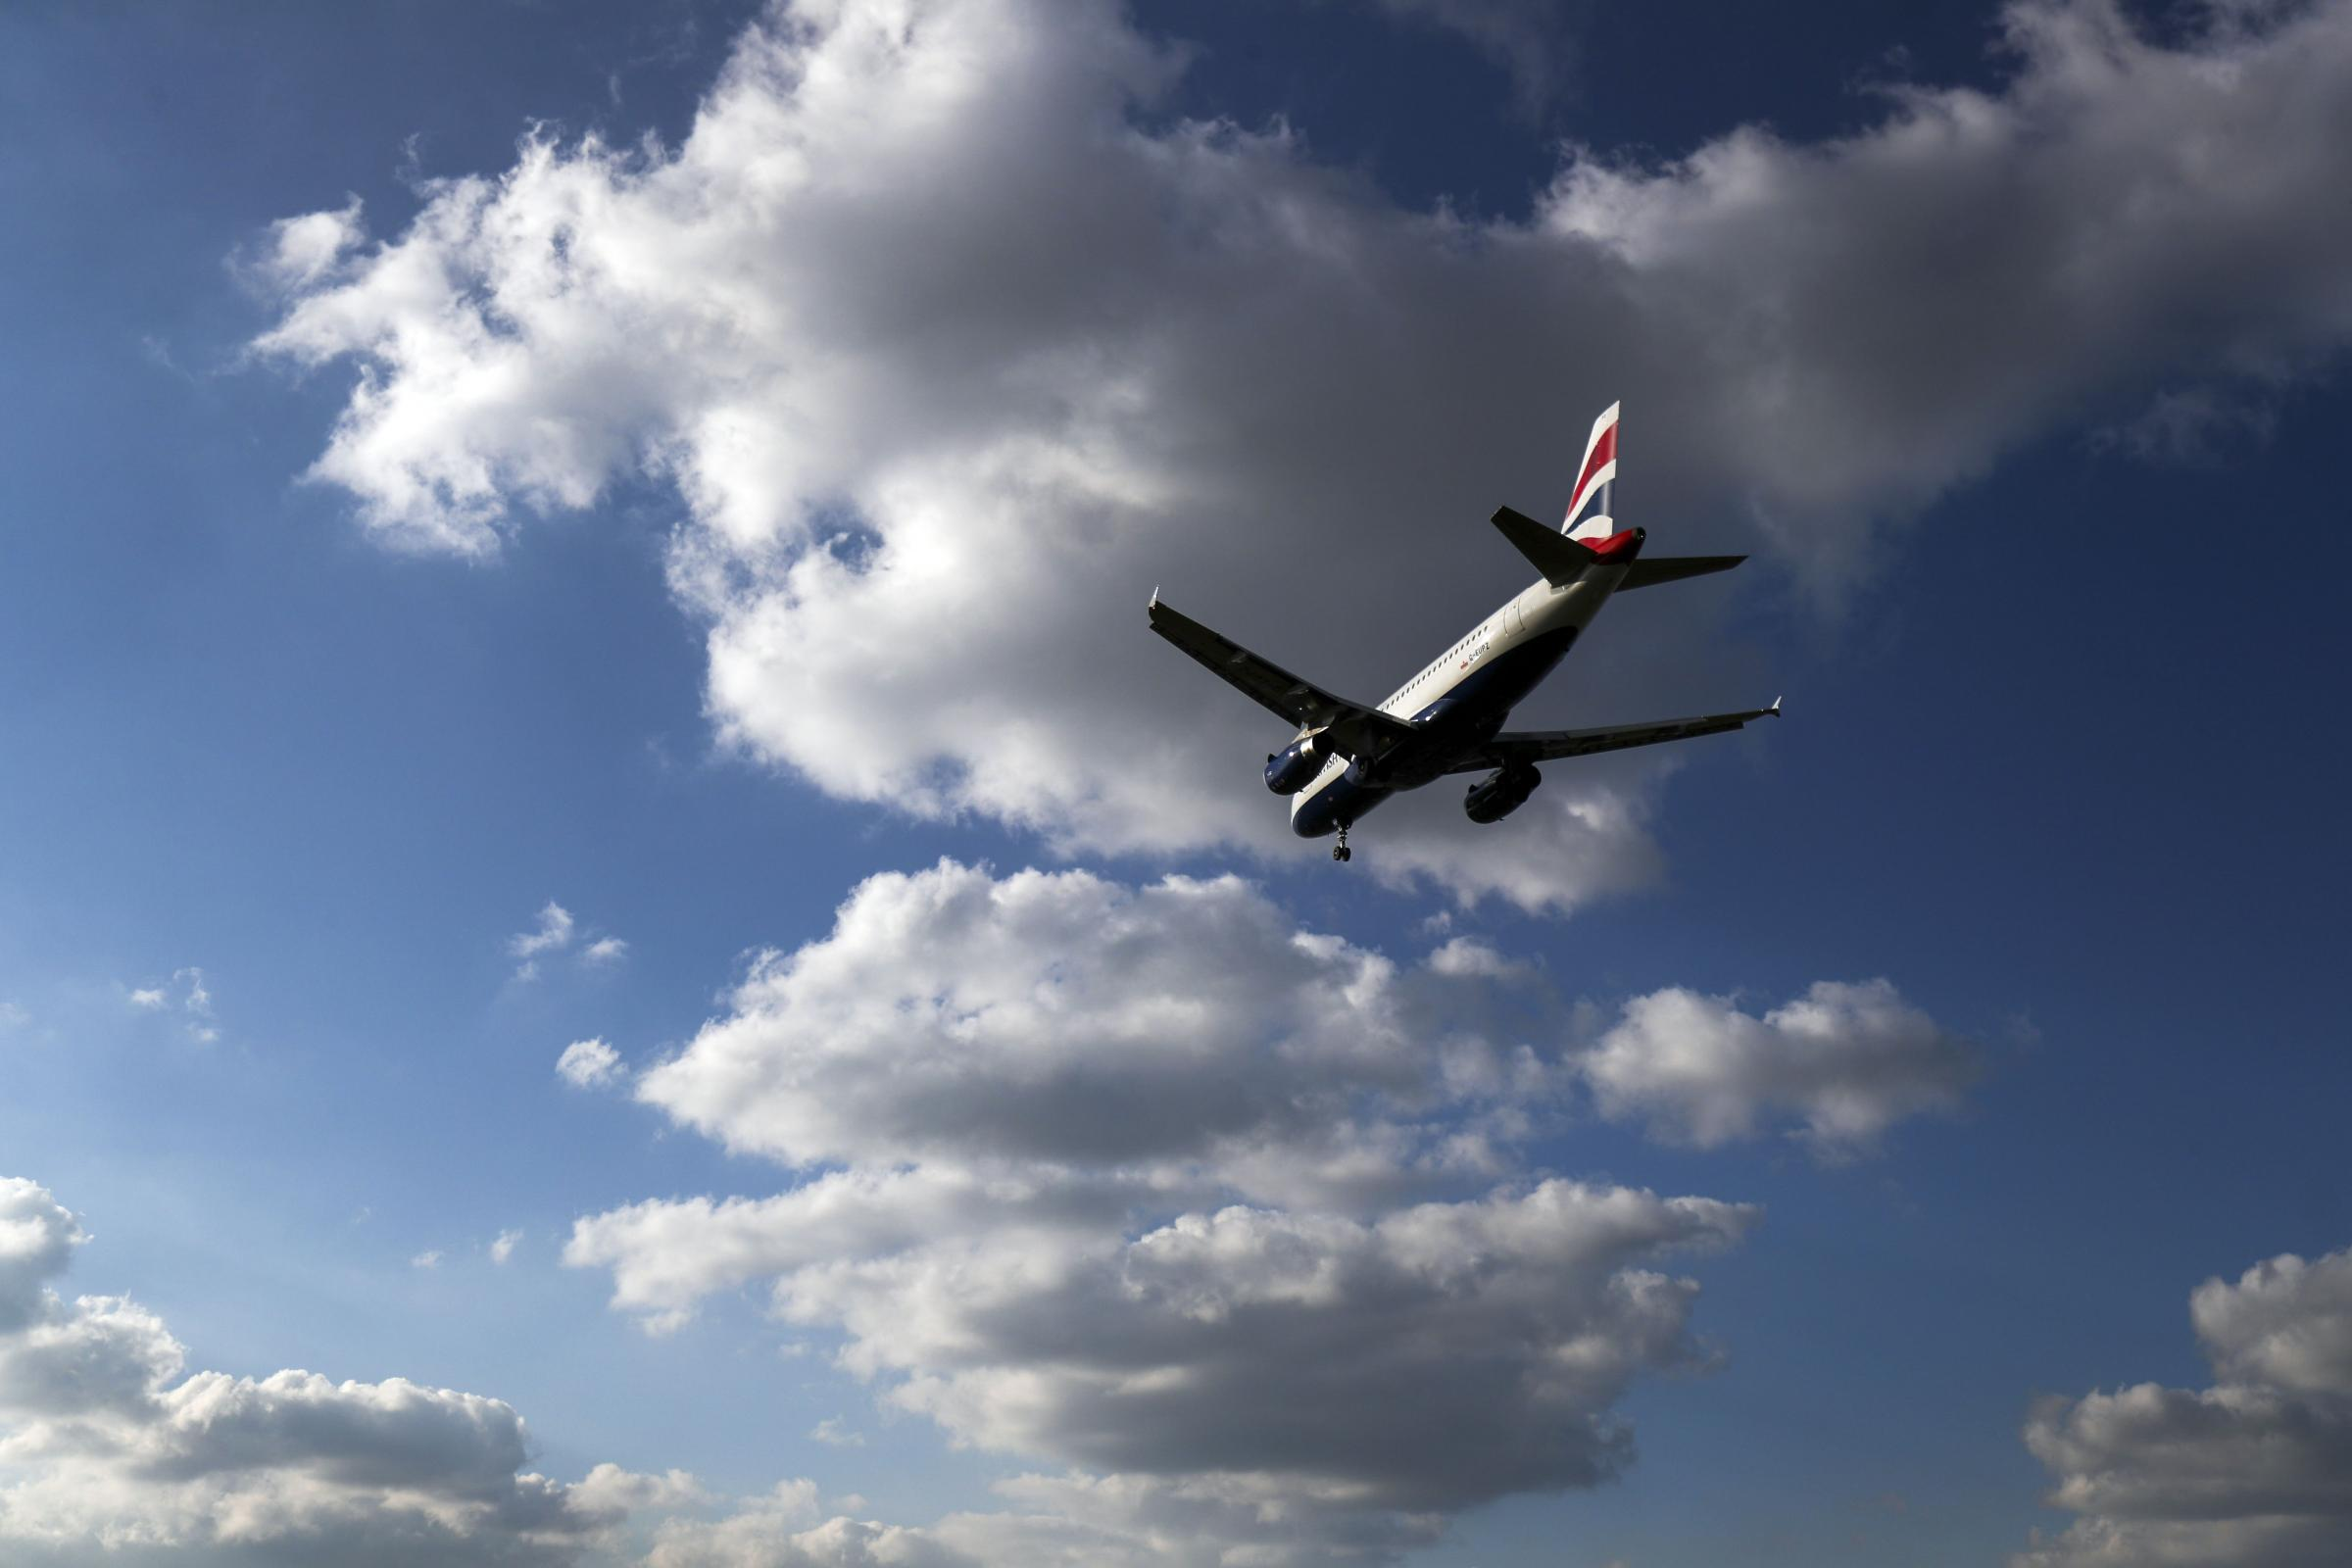 Charter flights to help stranded Britons get home